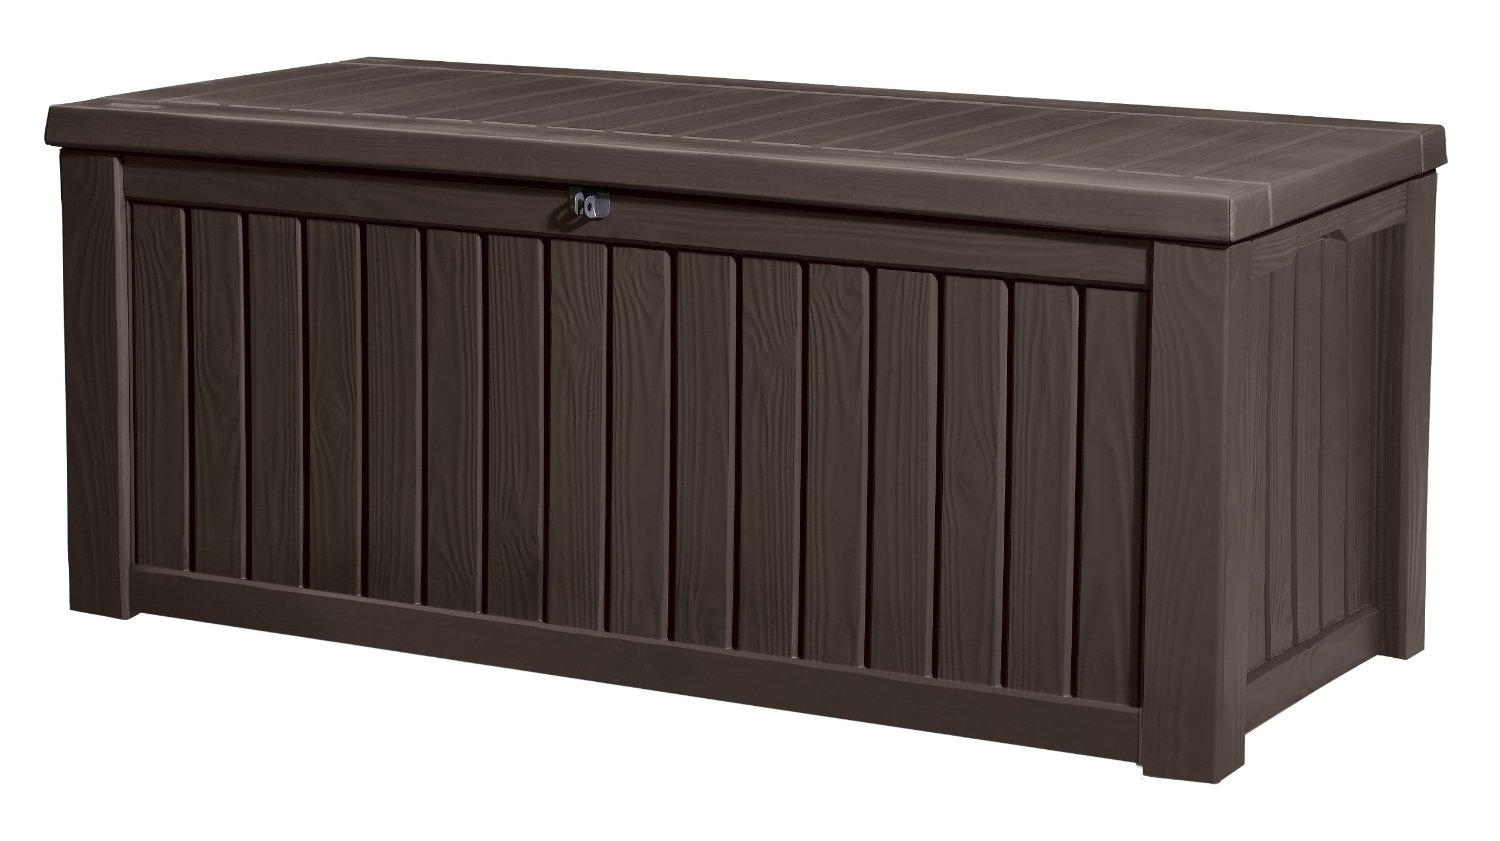 Keter Rockwood Deck Storage Box